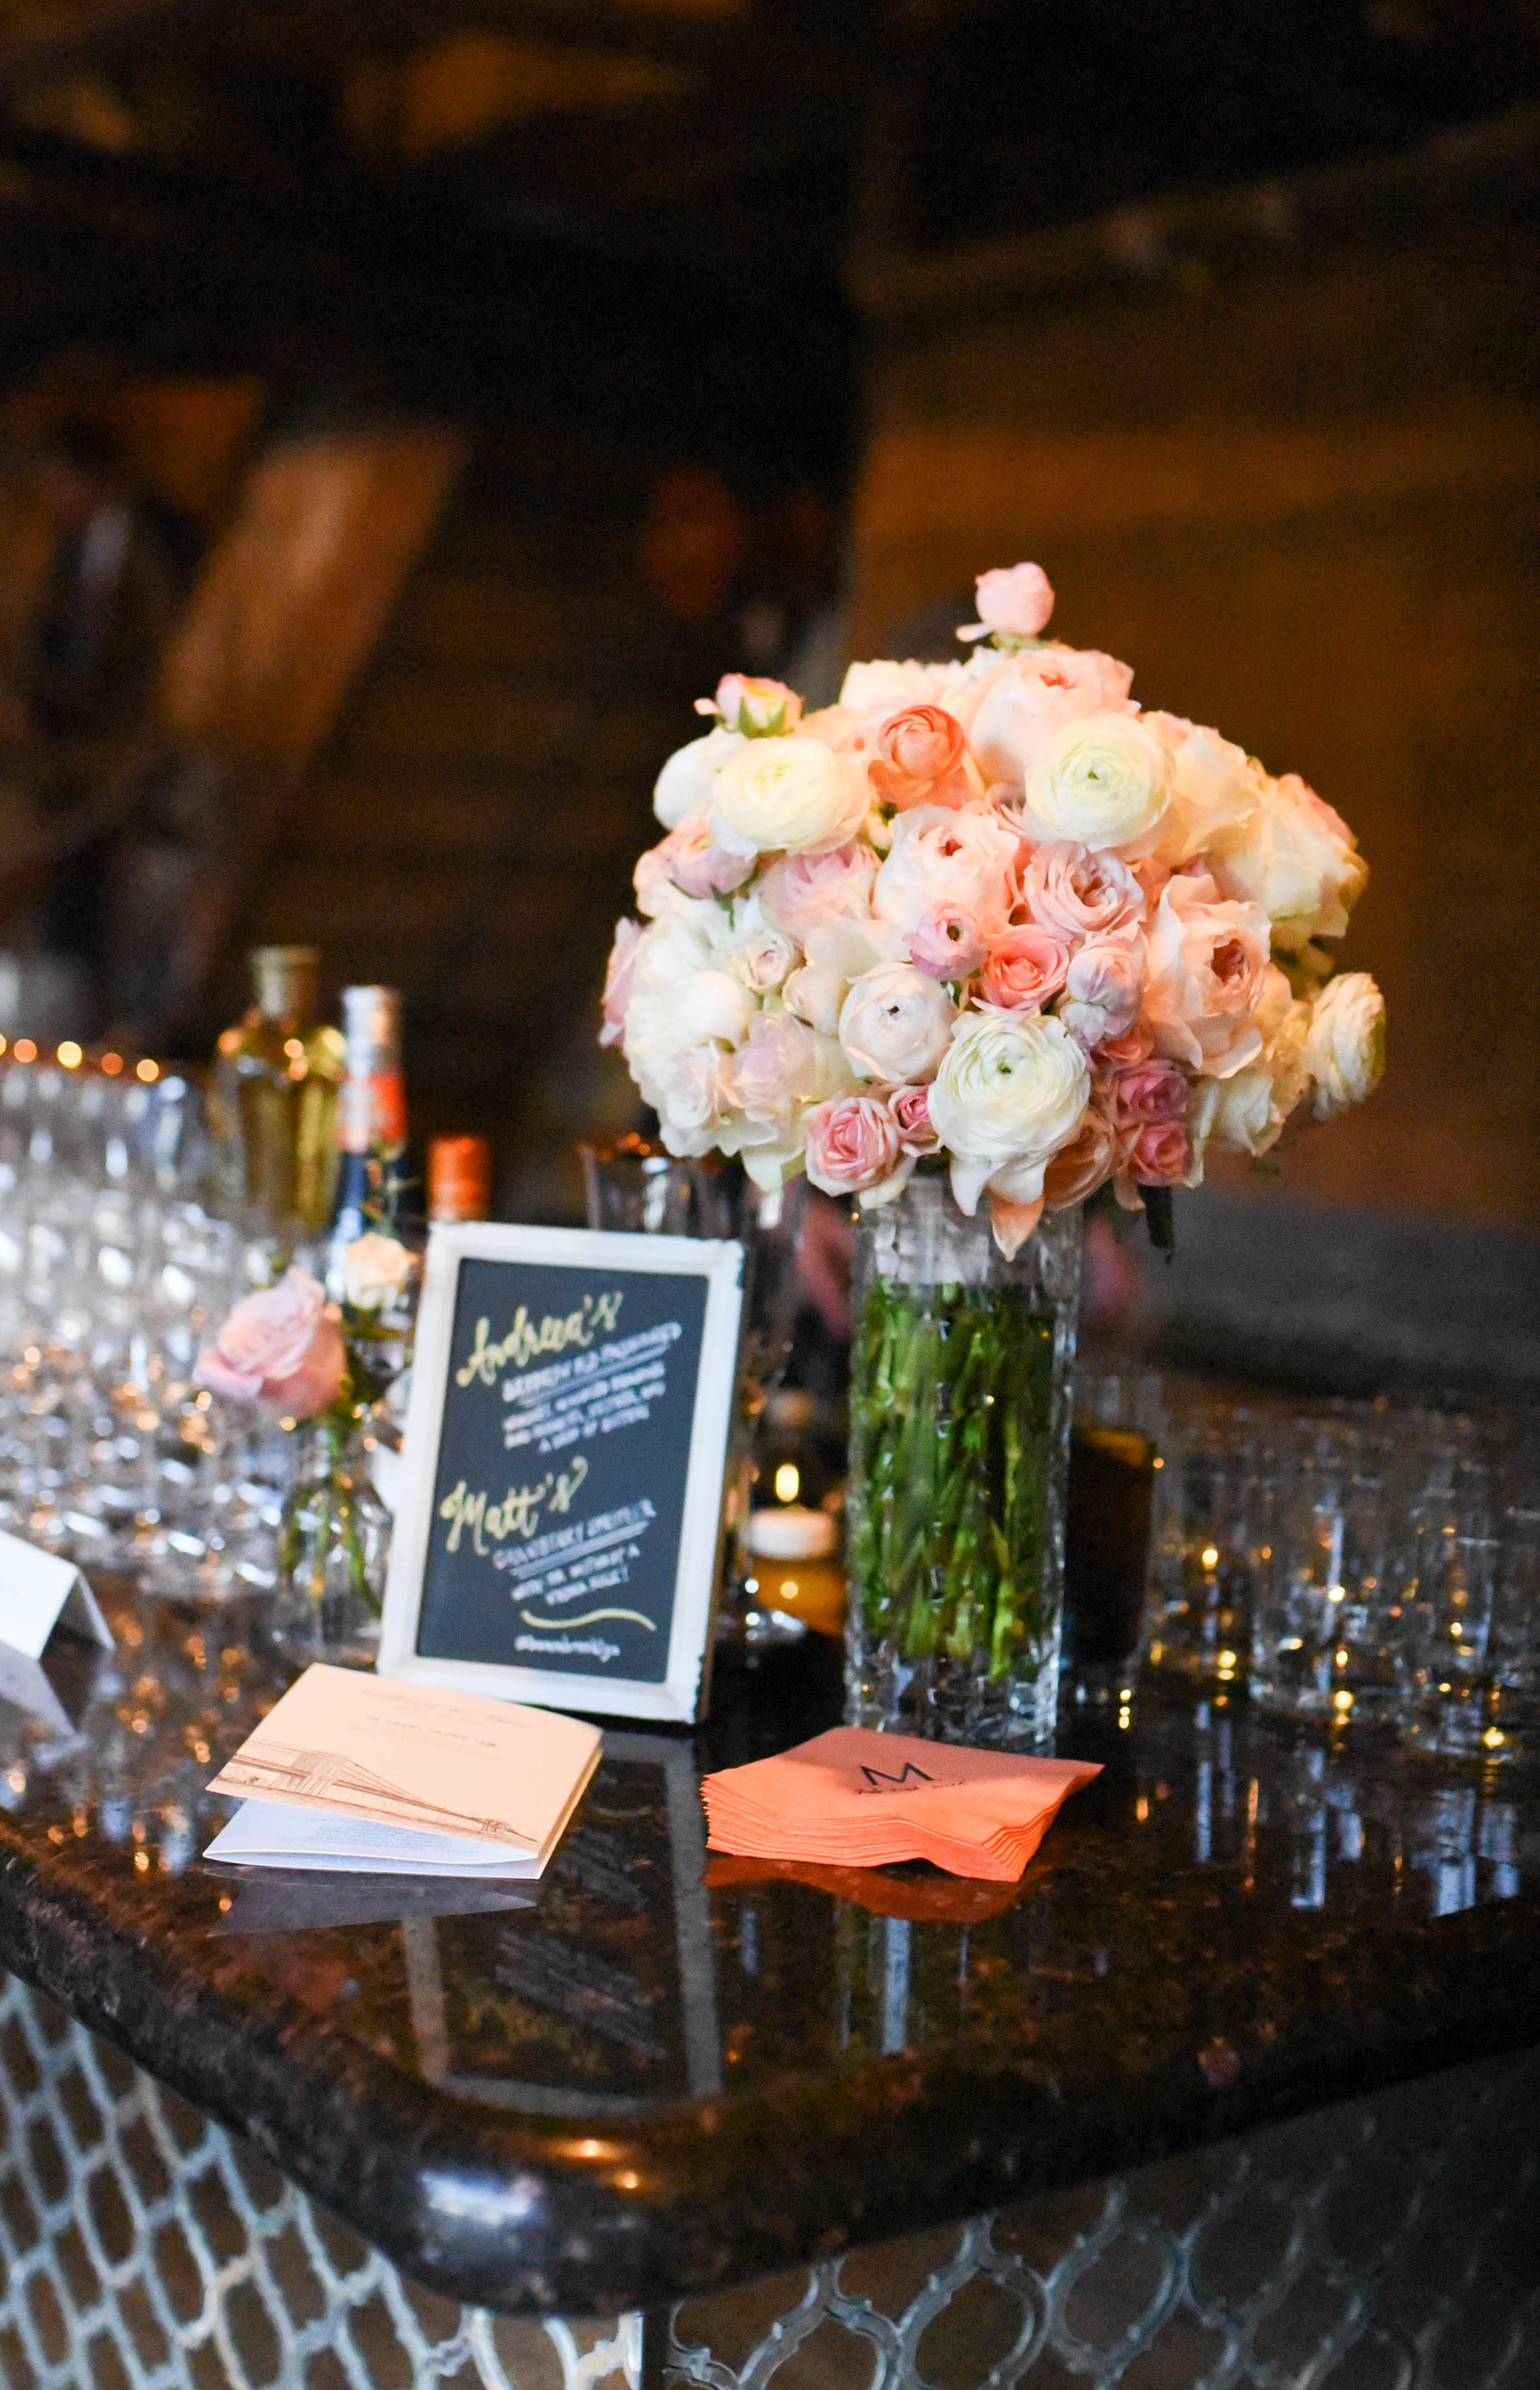 A pink and white bouquet next to the bar